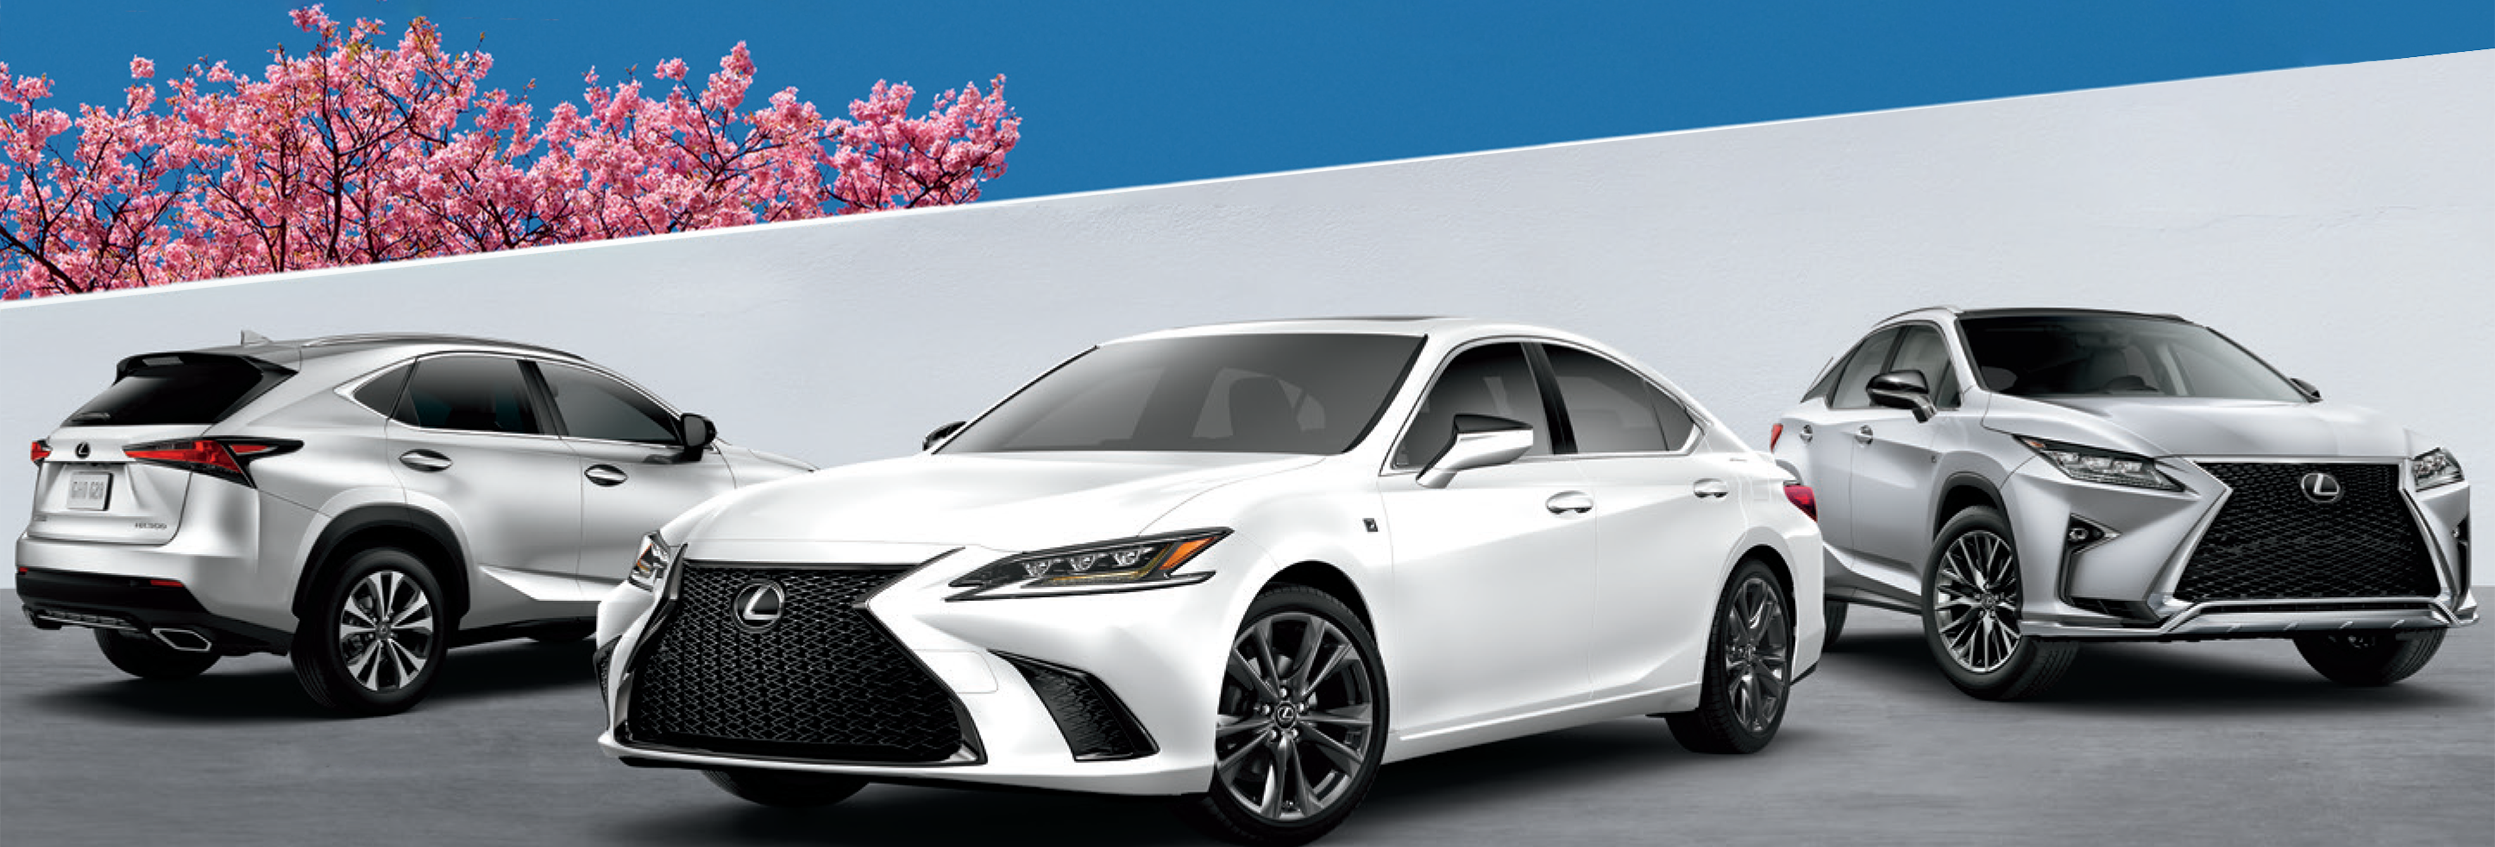 Lexus New Vehicles & L/Certified For Sale in Cary ...